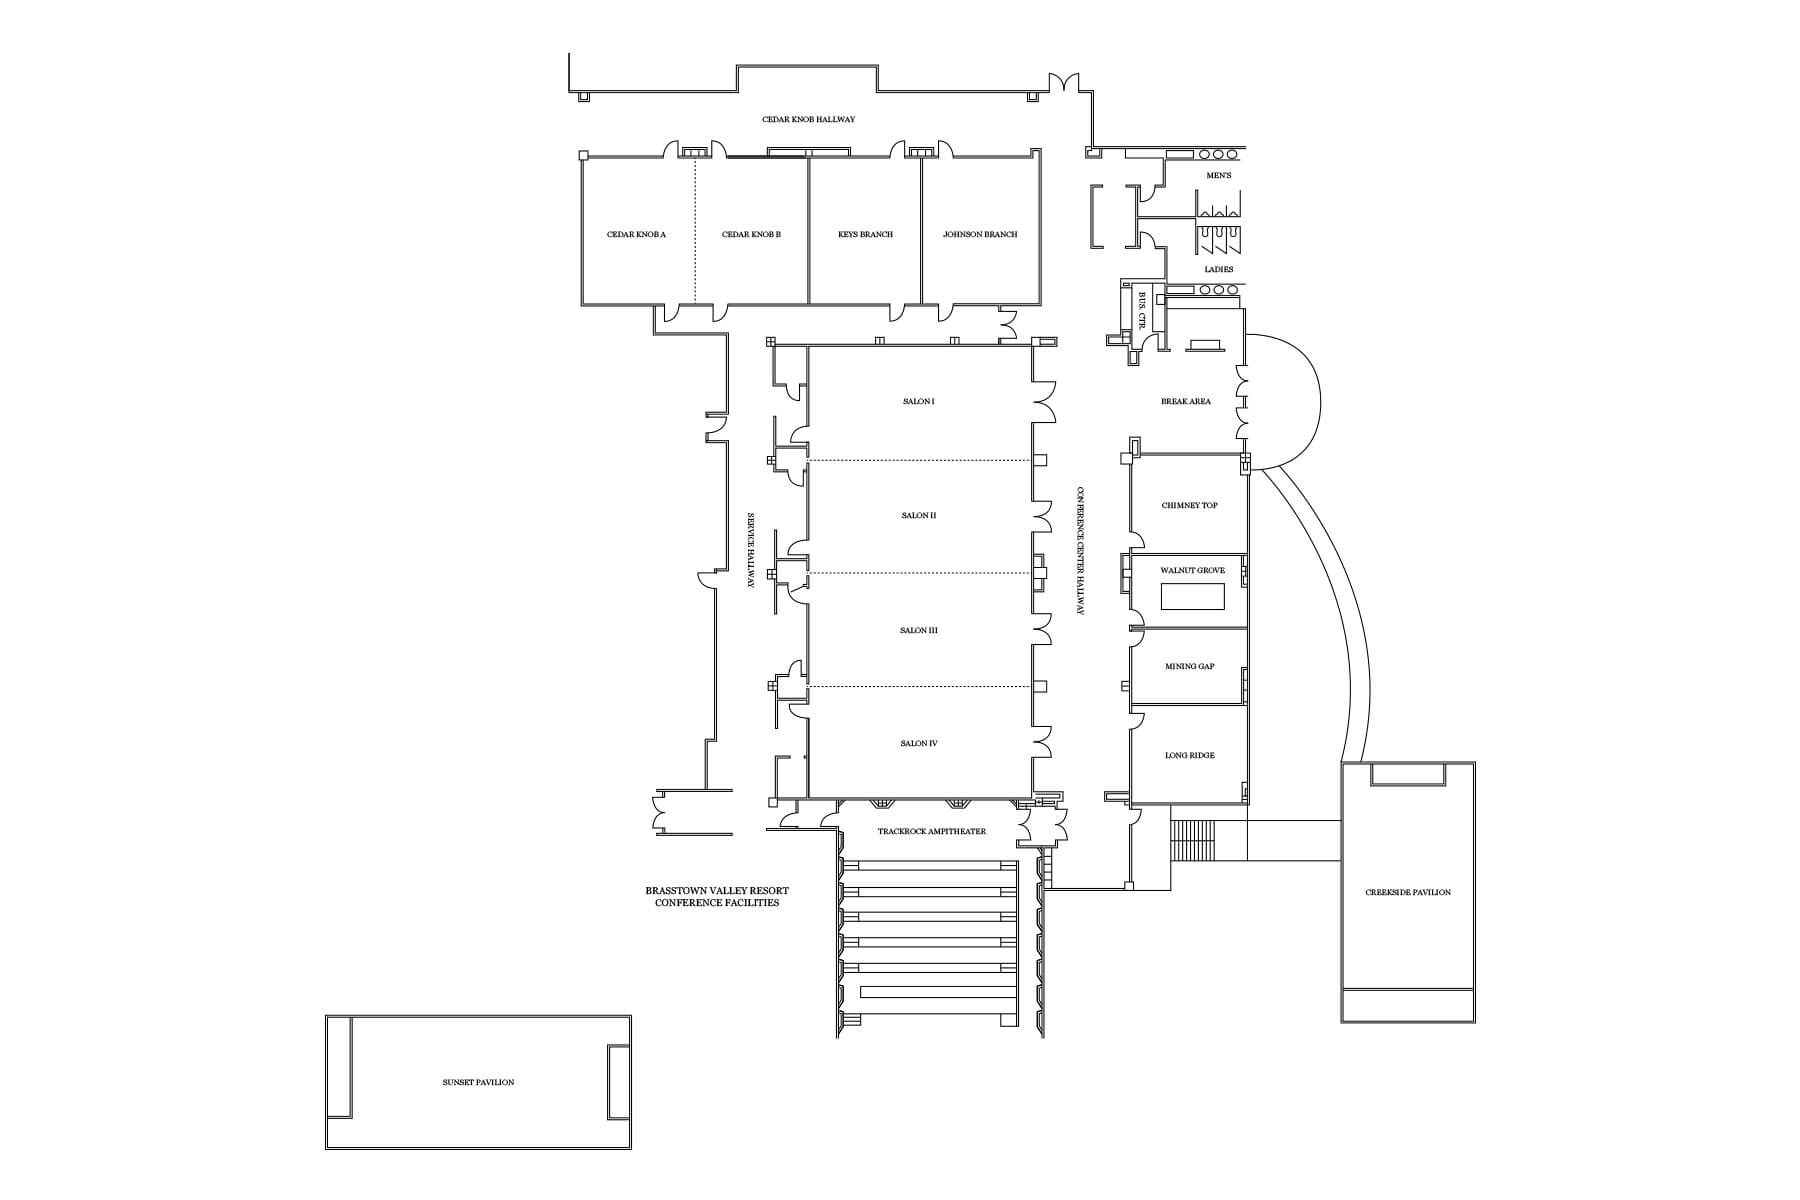 Brasstown-Valley-Georgia-Meeting-Packages-Facilities-Floor-Plan-1